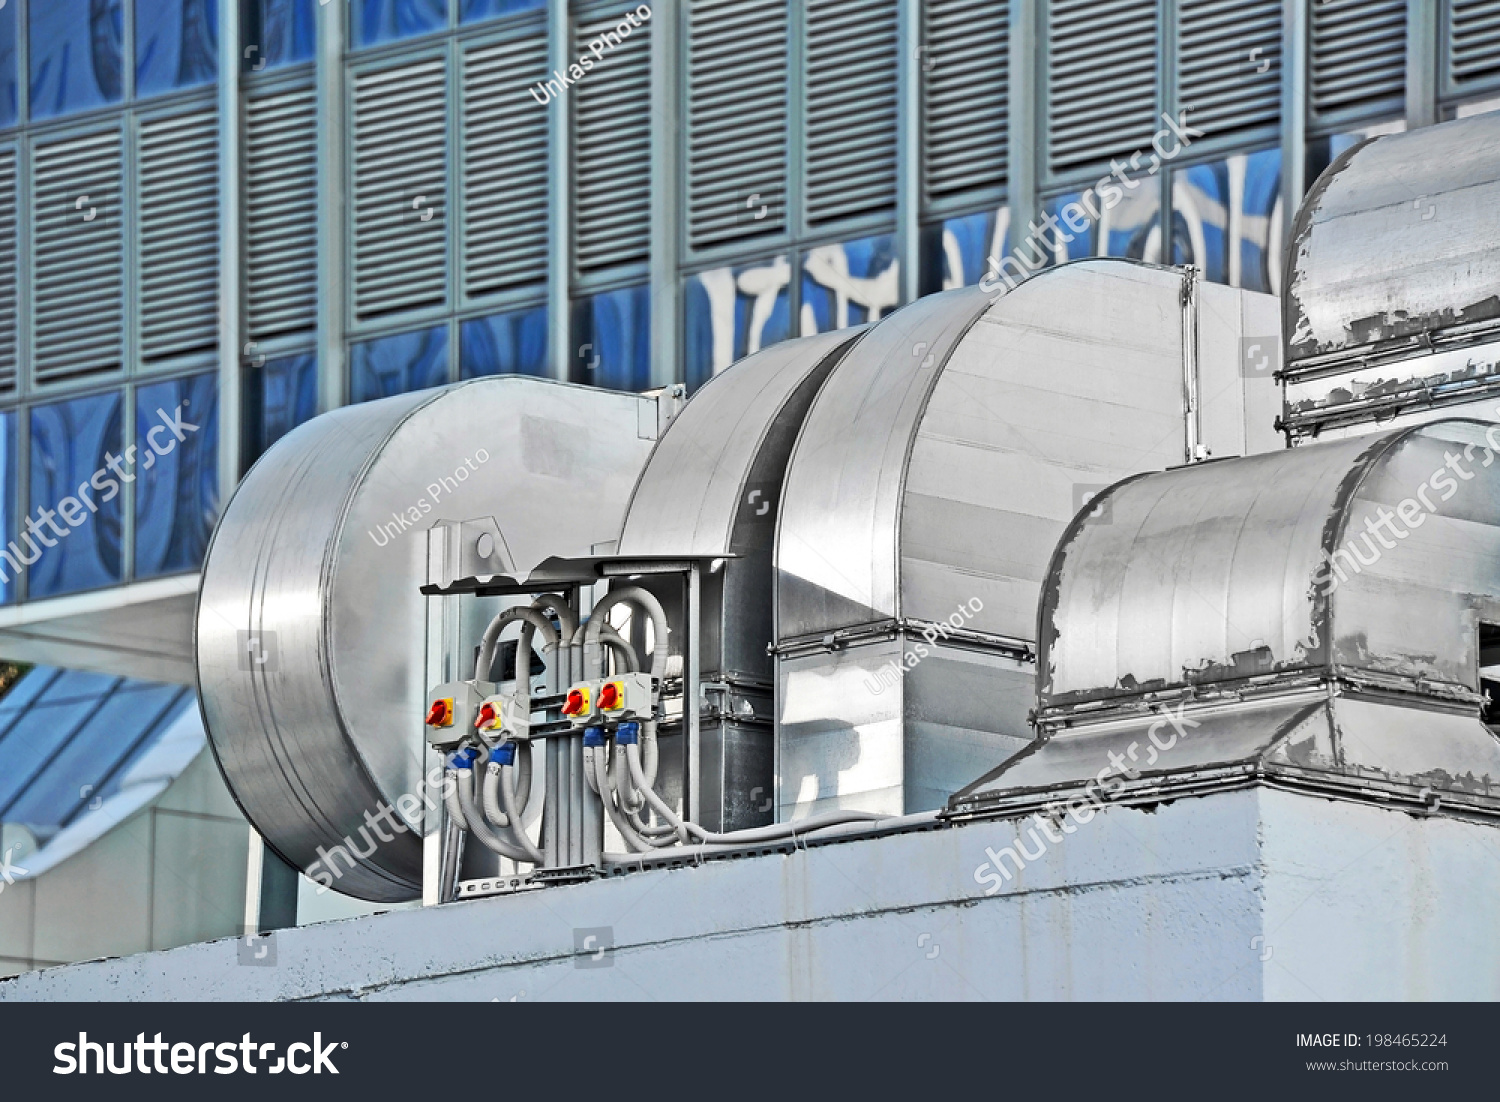 Industrial Air Ventilator : Industrial air conditioning ventilation systems on stock